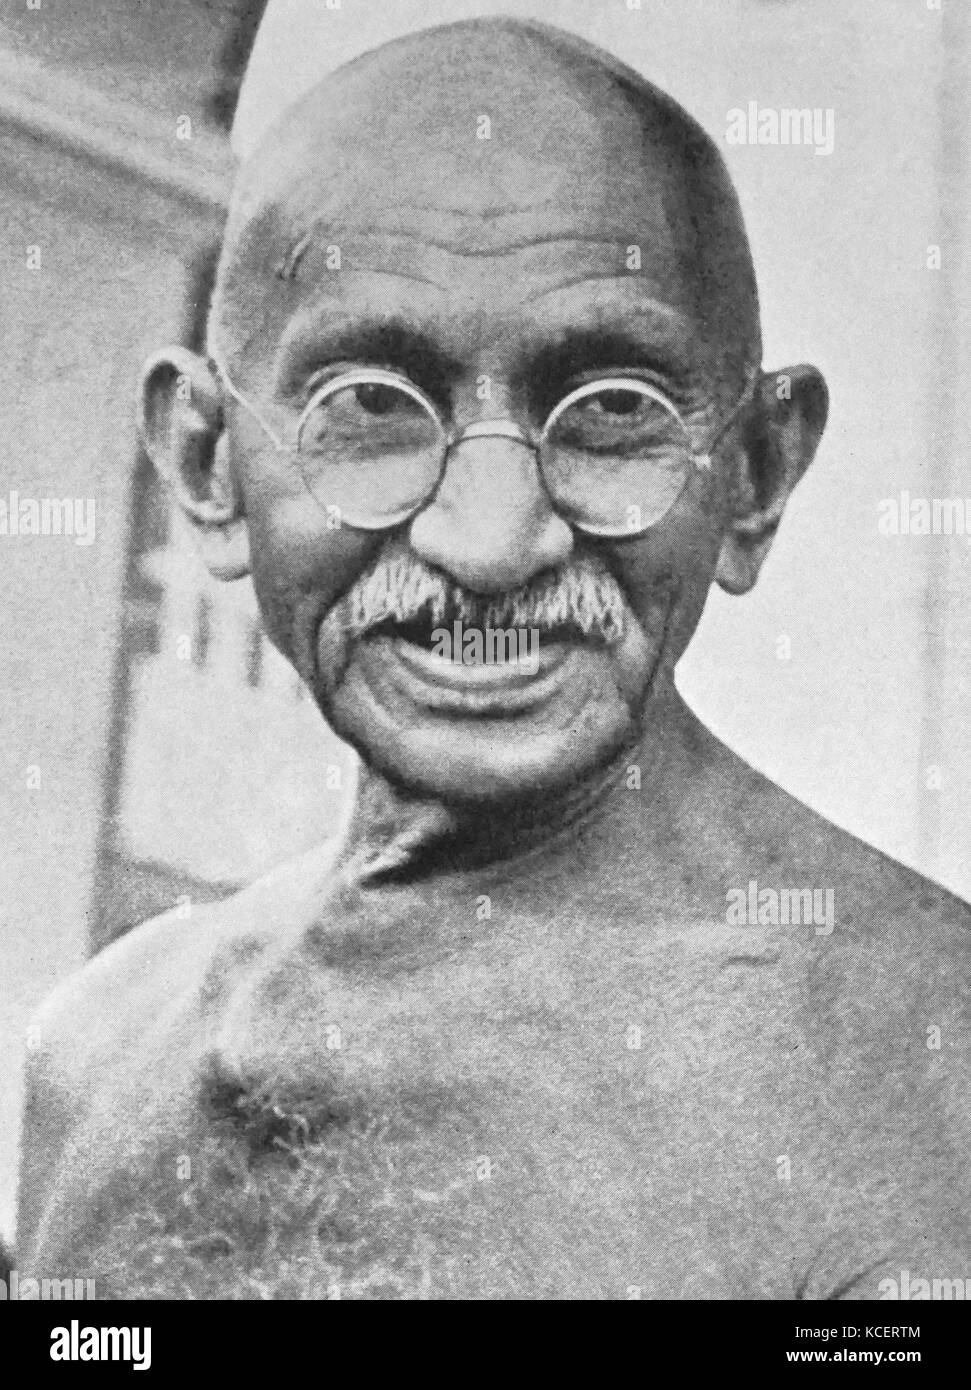 Mohandas Karamchand Gandhi (2 October 1869 – 30 January 1948). Preeminent leader of the Indian independence movement - Stock Image